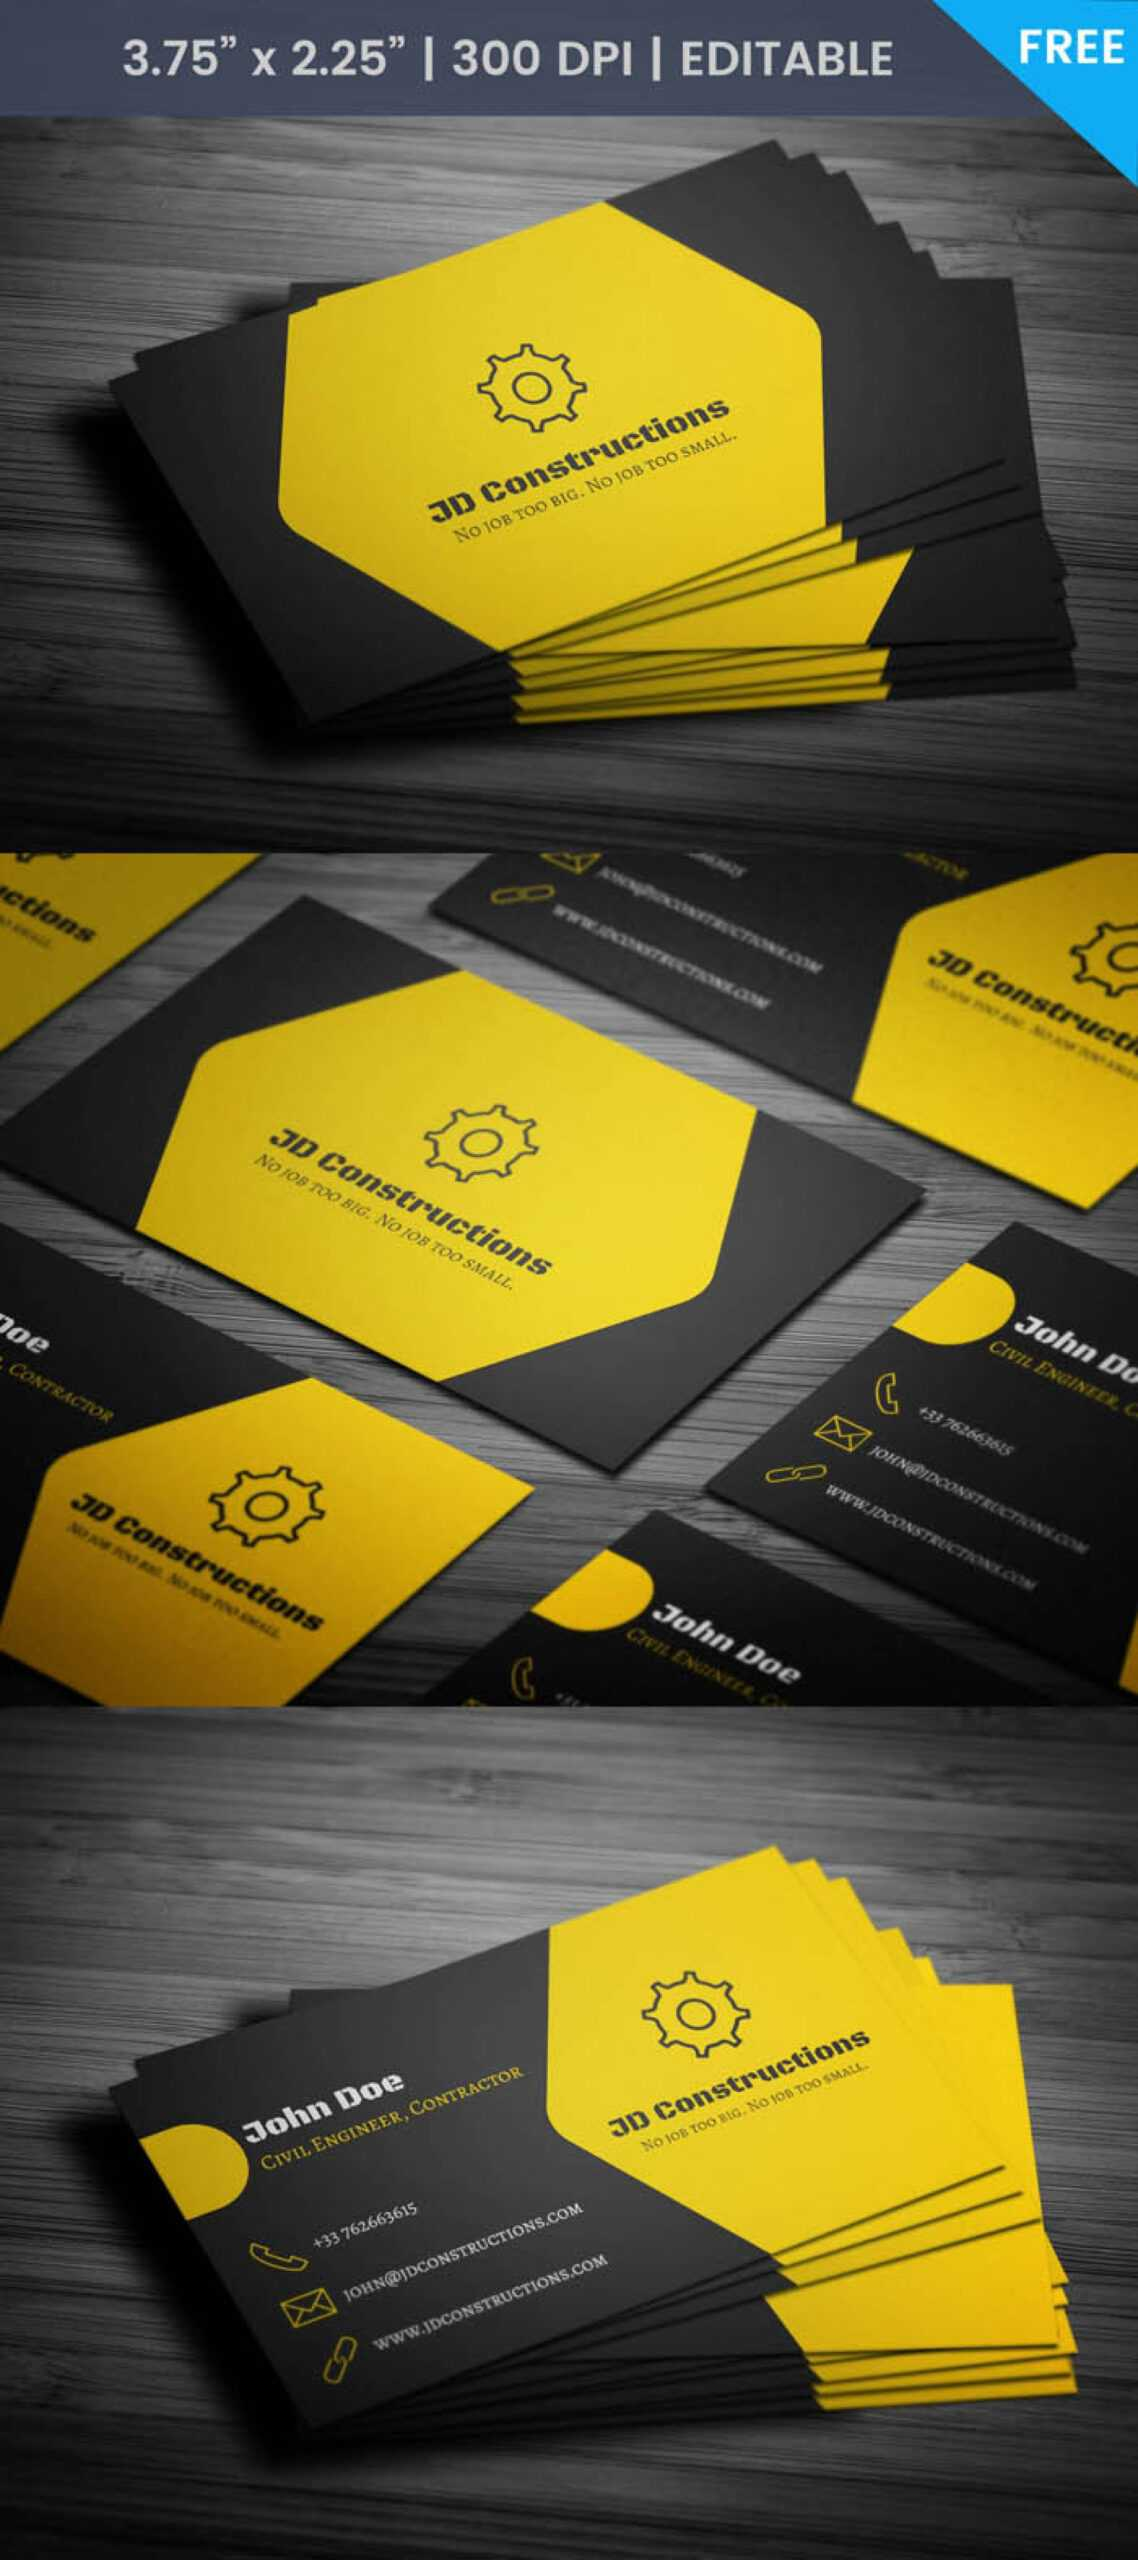 019 Template Ideas Construction Business Card Archaicawful Pertaining To Construction Business Card Templates Download Free